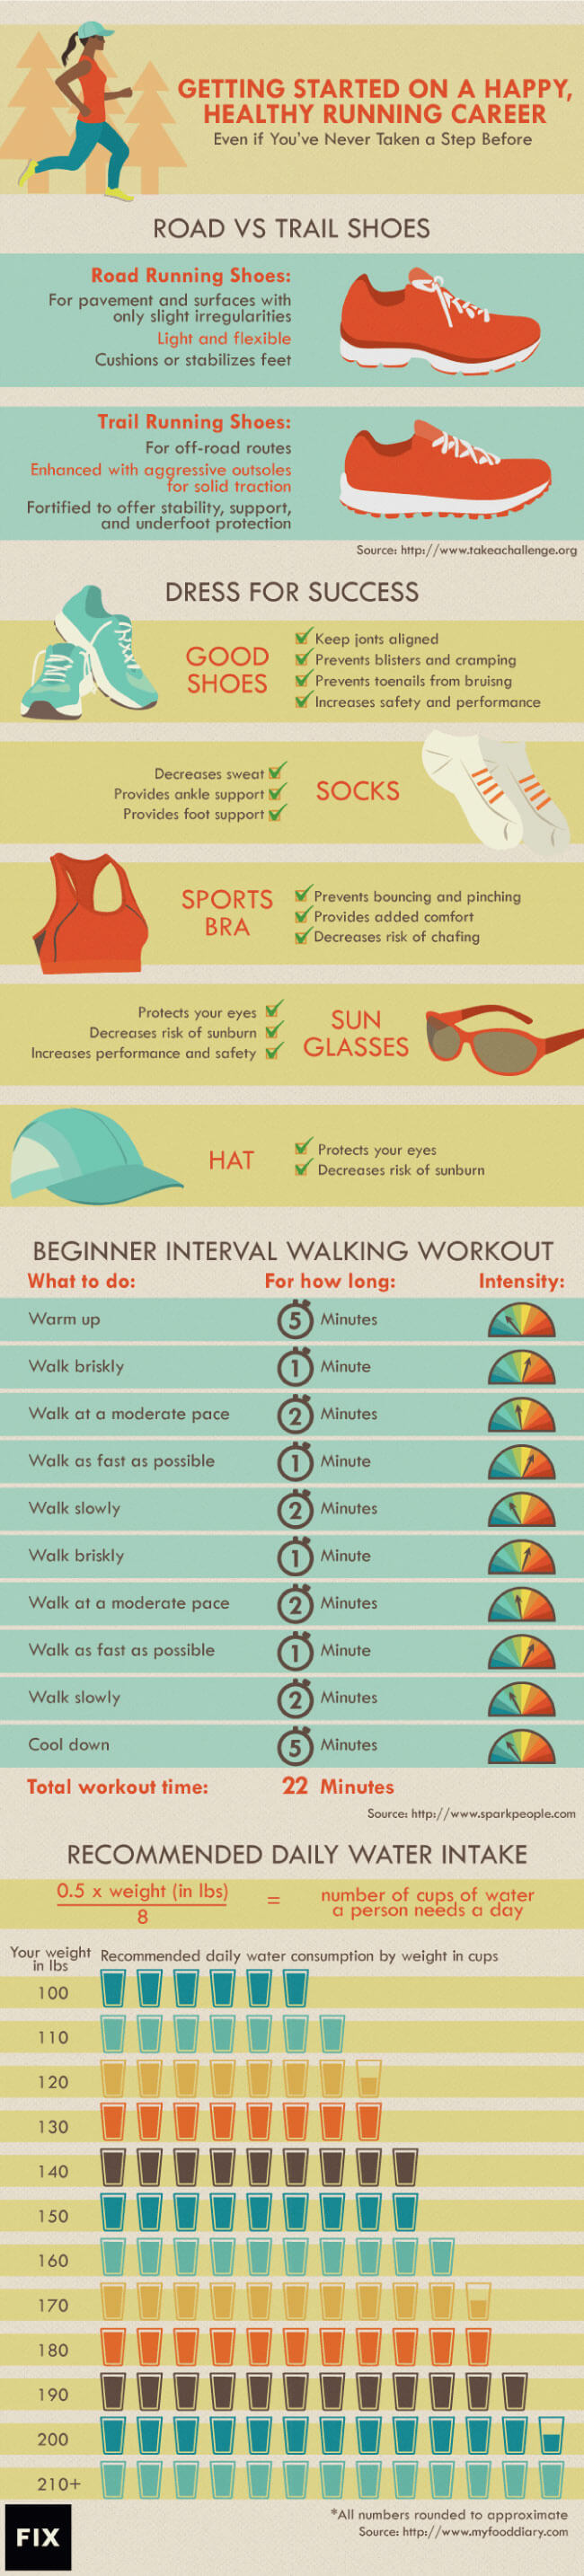 Tips to Start Your Beginner Running Workout